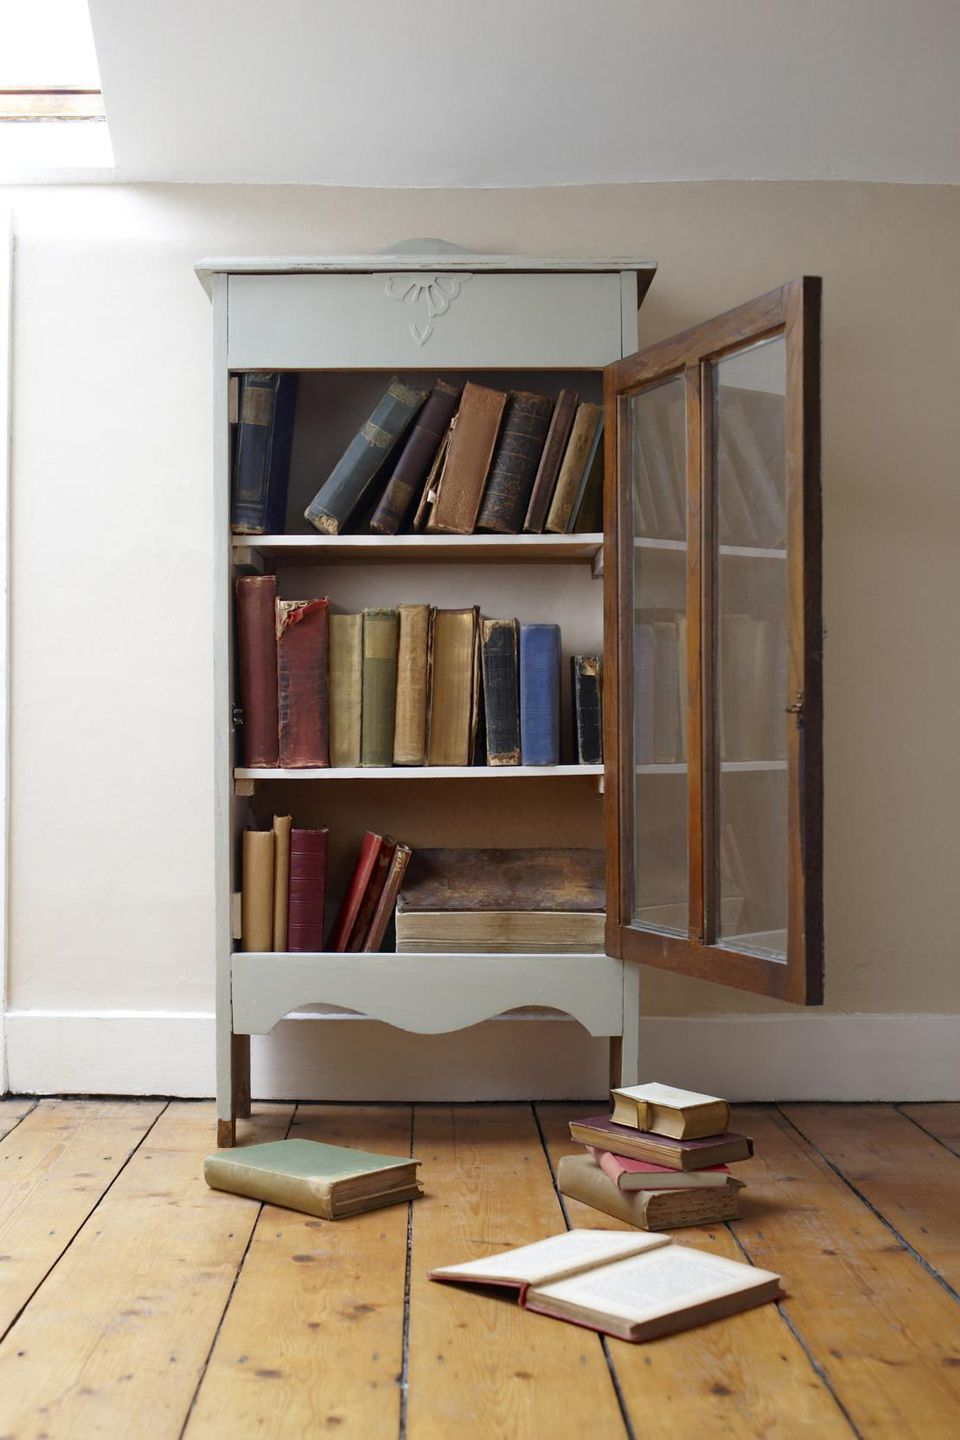 How To Refurbish An Old Bookcase - Old book case